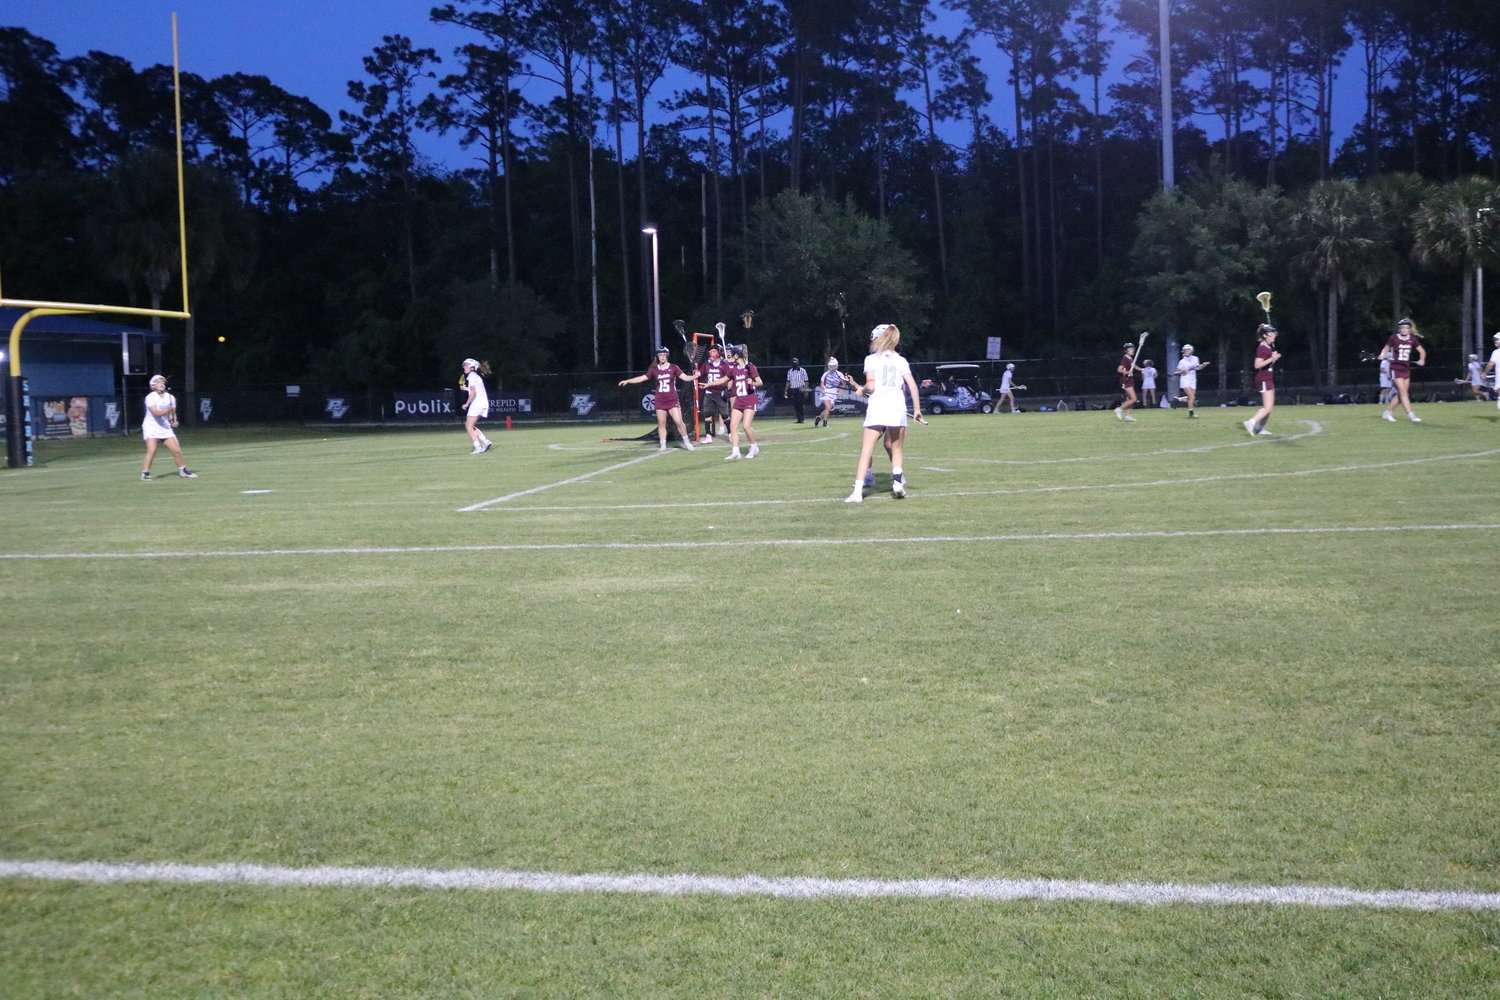 Ponte Vedra girls lacrosse plays St. Augustine in the regional semifinals on Thursday, April 22. The Sharks won 18-2 to advance to the finals.